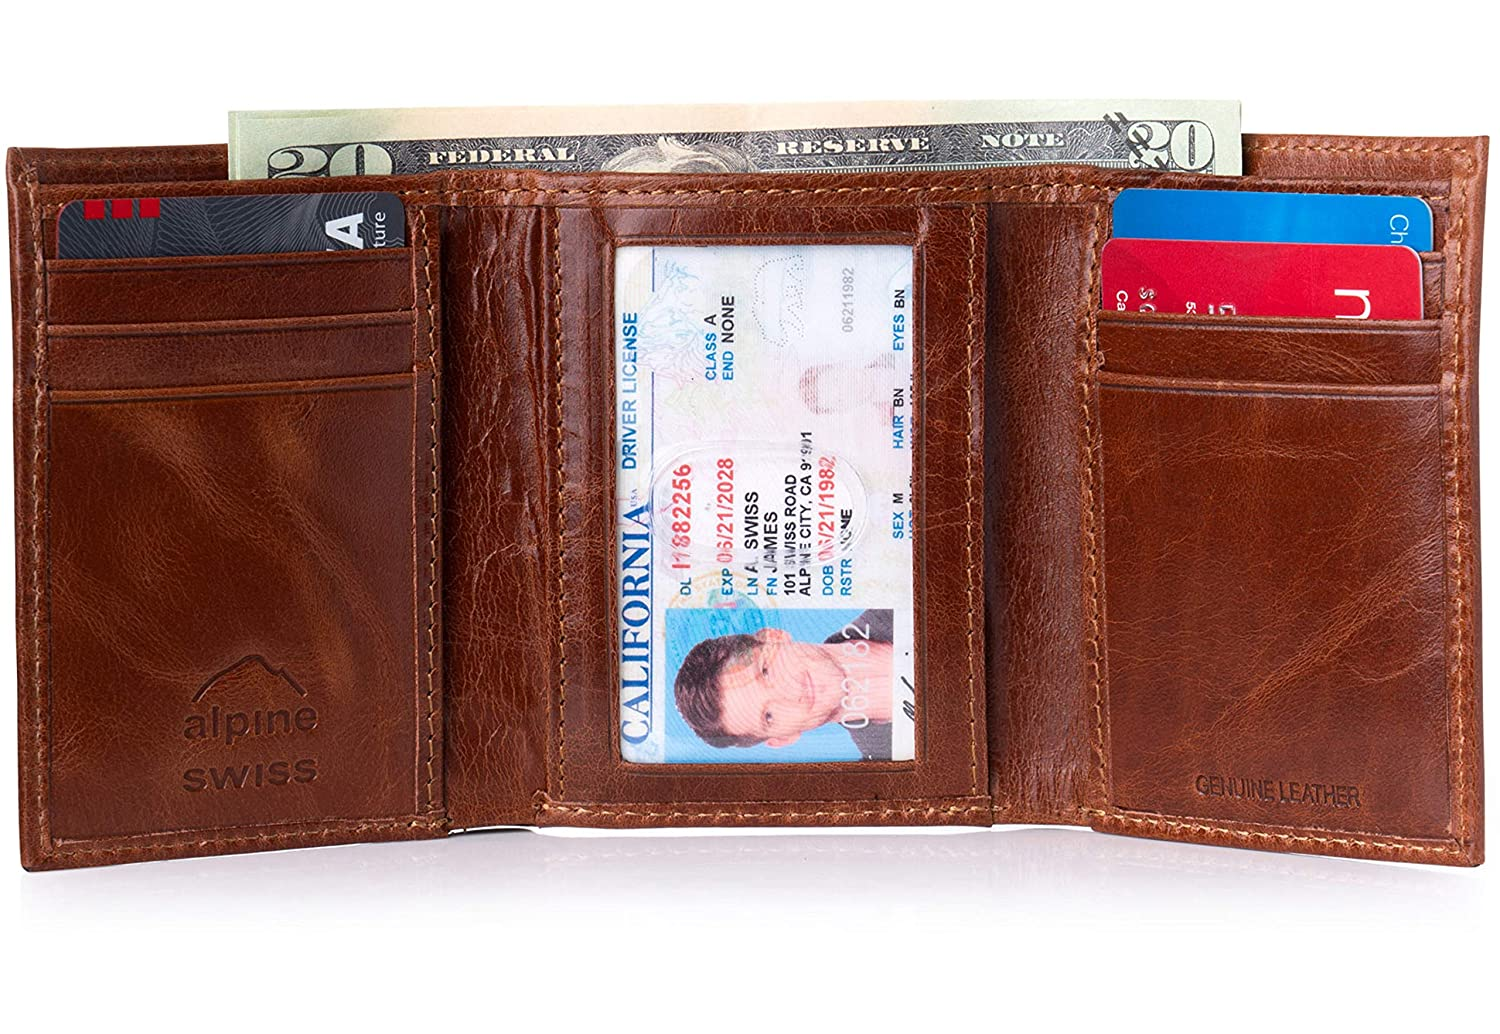 Alpine Swiss Mens RFID Blocking Trifold Wallet Genuine Leather Black One Size RFID-143